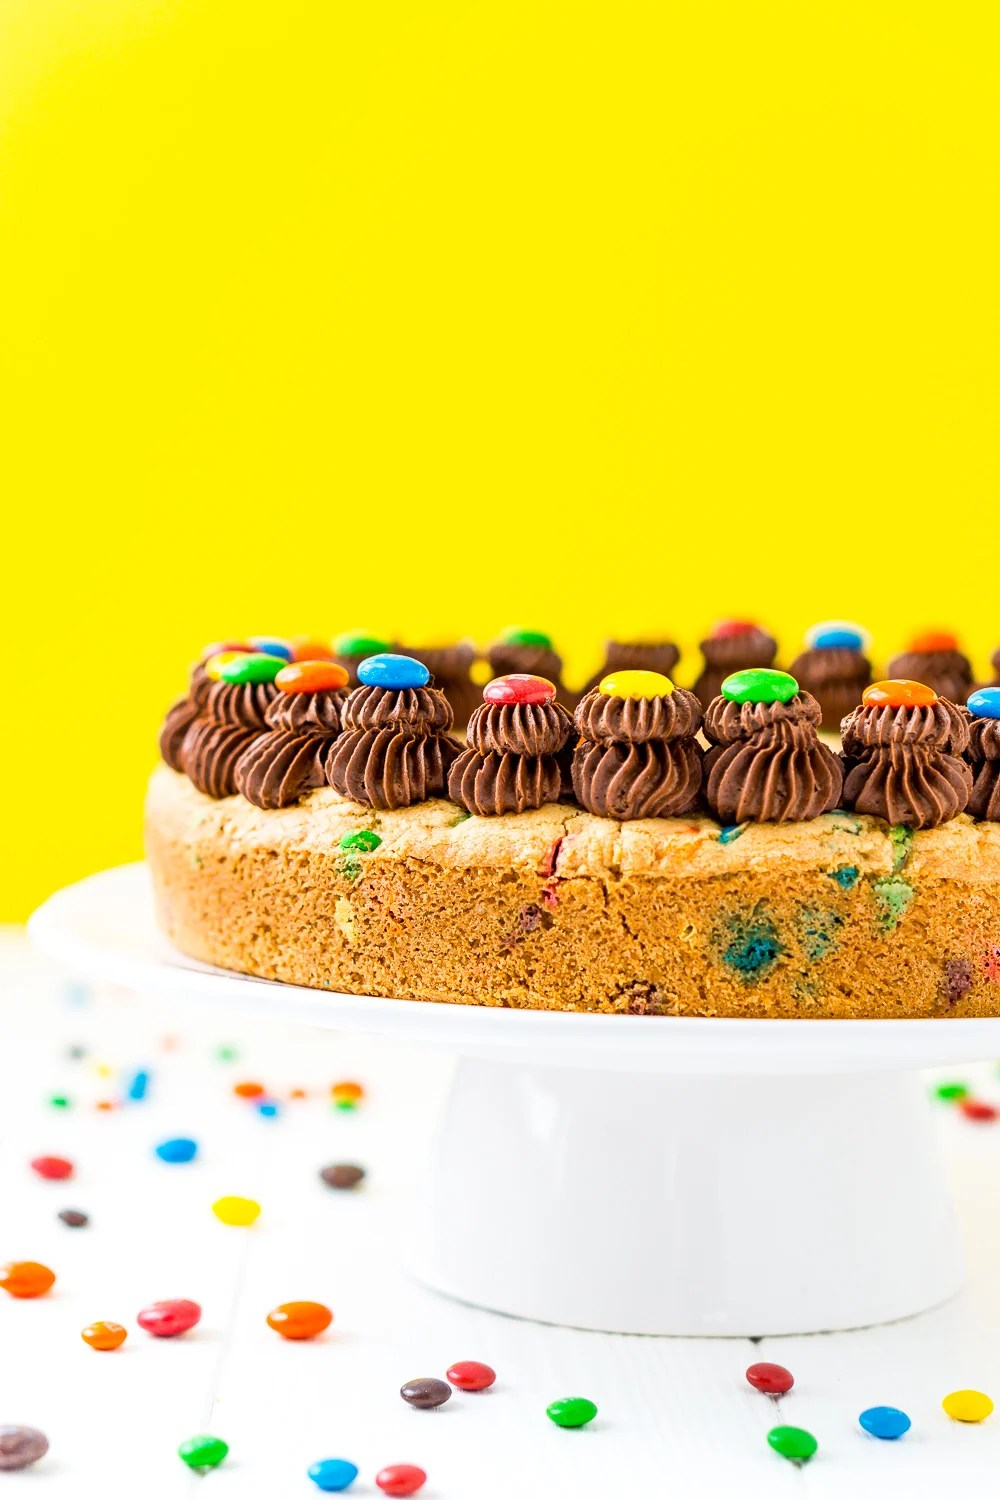 M&M's Cookie Cake with chocolate frosting on a white cake stand with yellow background.